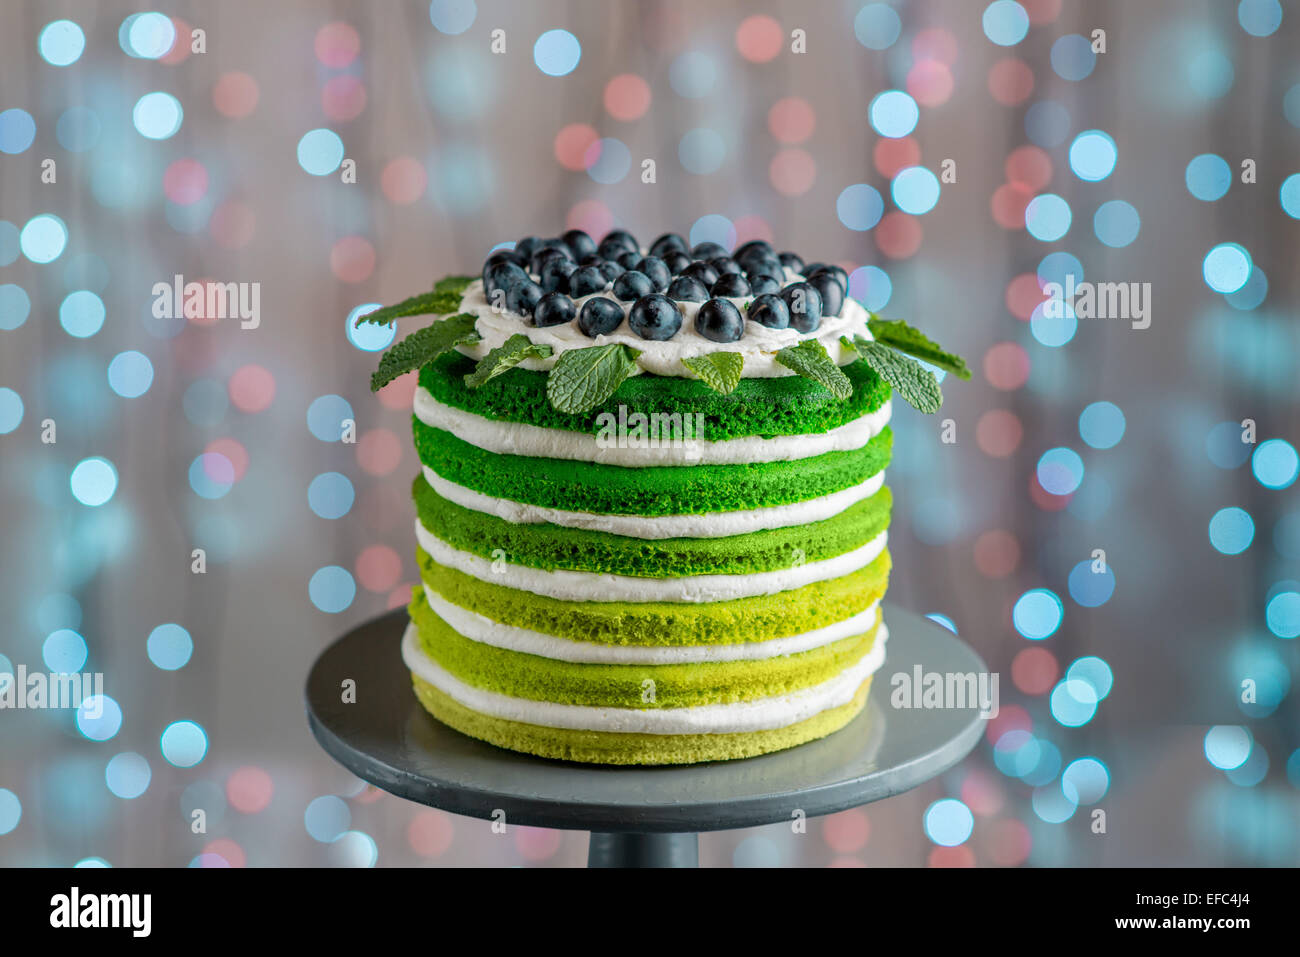 Nice Sponge Happy Birthday Cake With Mascarpone And Grapes On The